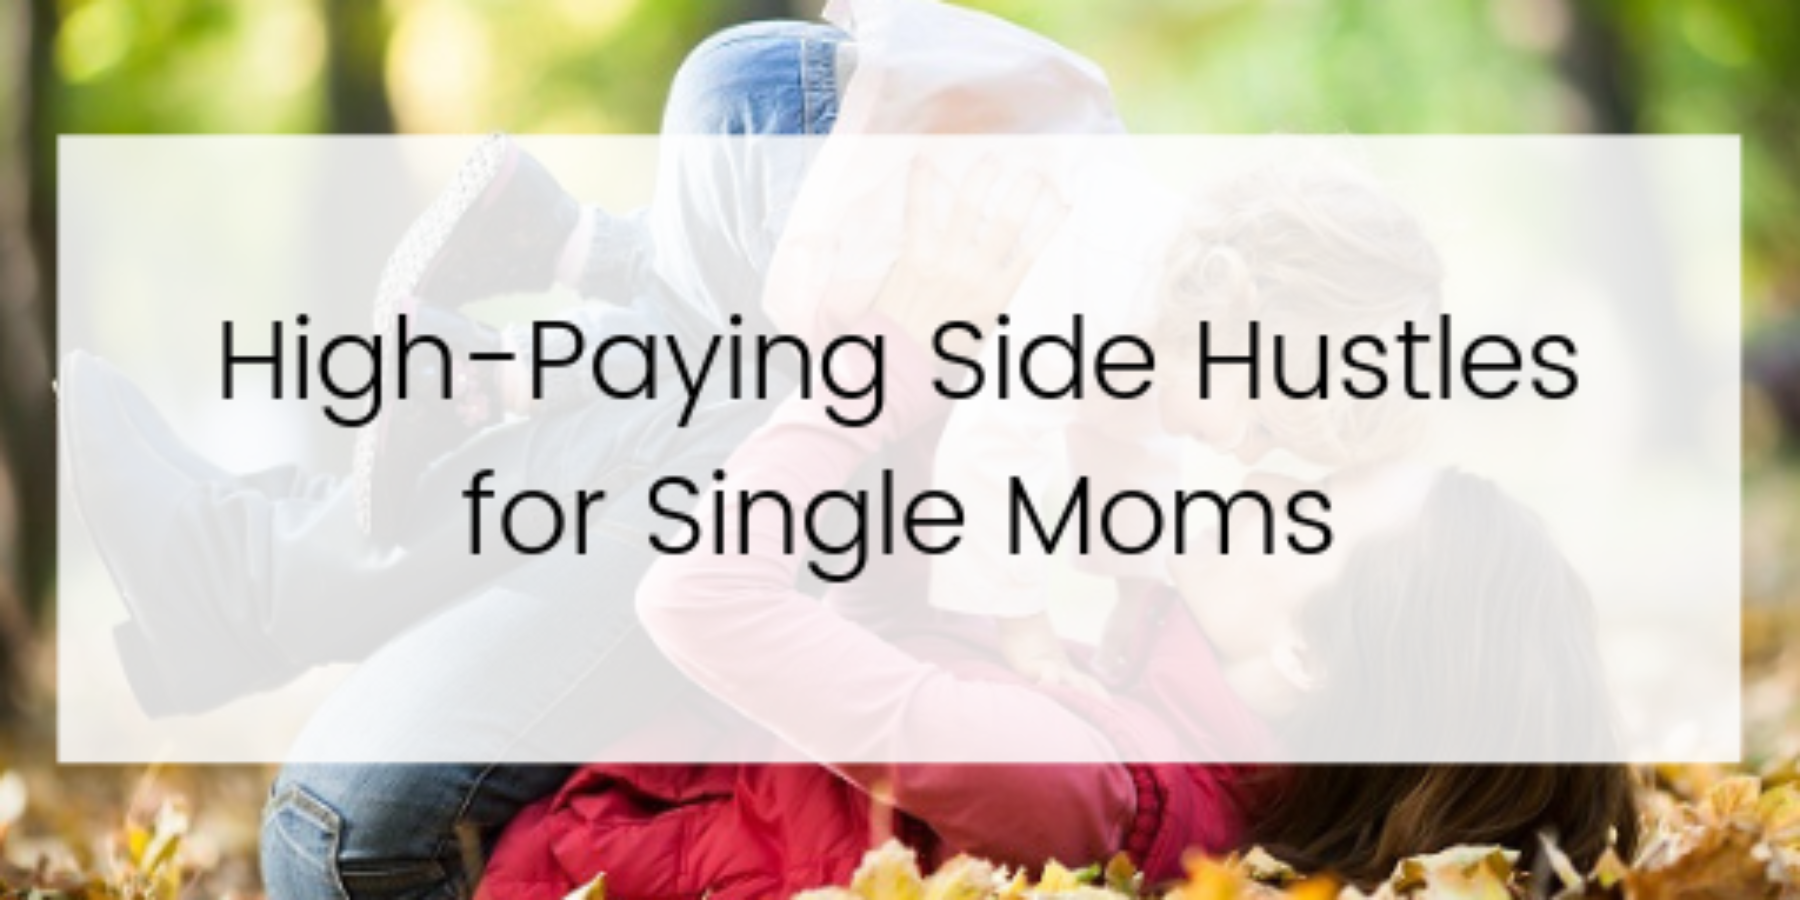 High paying side hustles for single moms